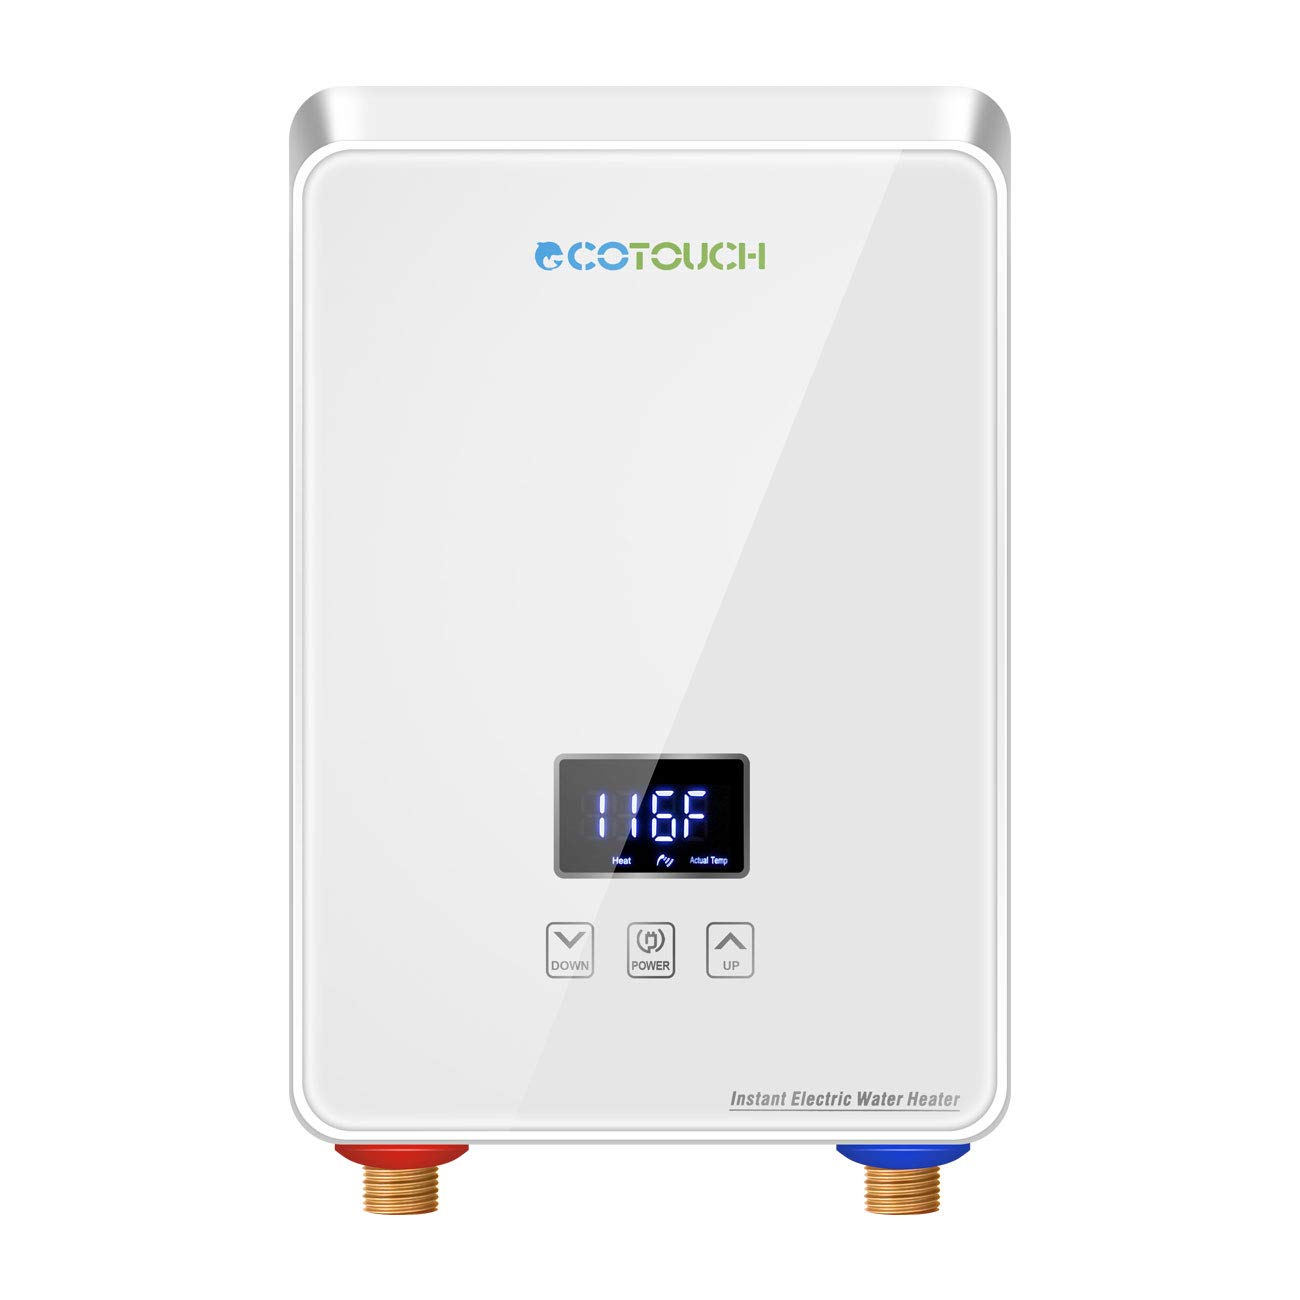 ECOTOUCH Electric Tankless Water Heater Point-of-Use Hot Water Heater Digital Display for Energy Efficiency 5.5kW at 240V, White by ECOTOUCH